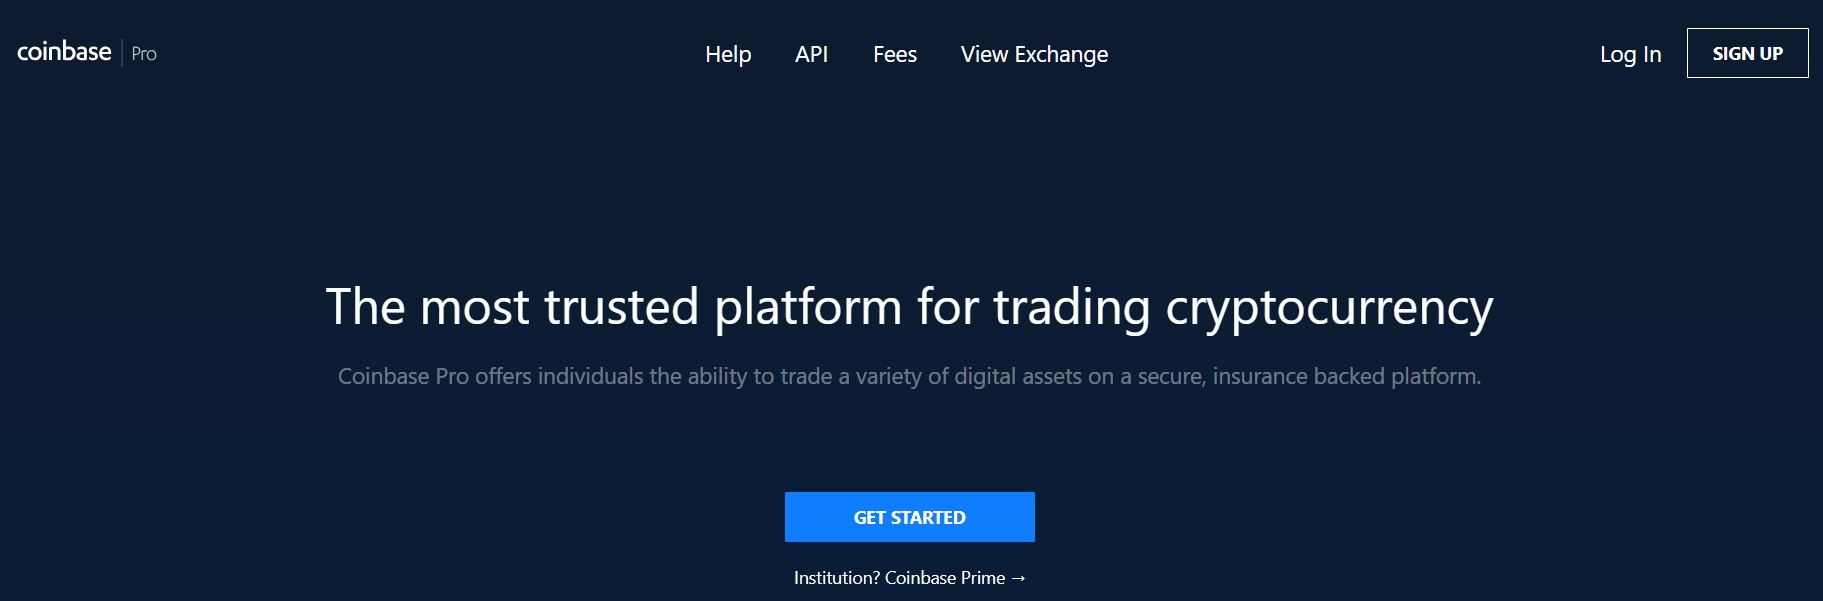 Coinbase Pro (GDAX) official website